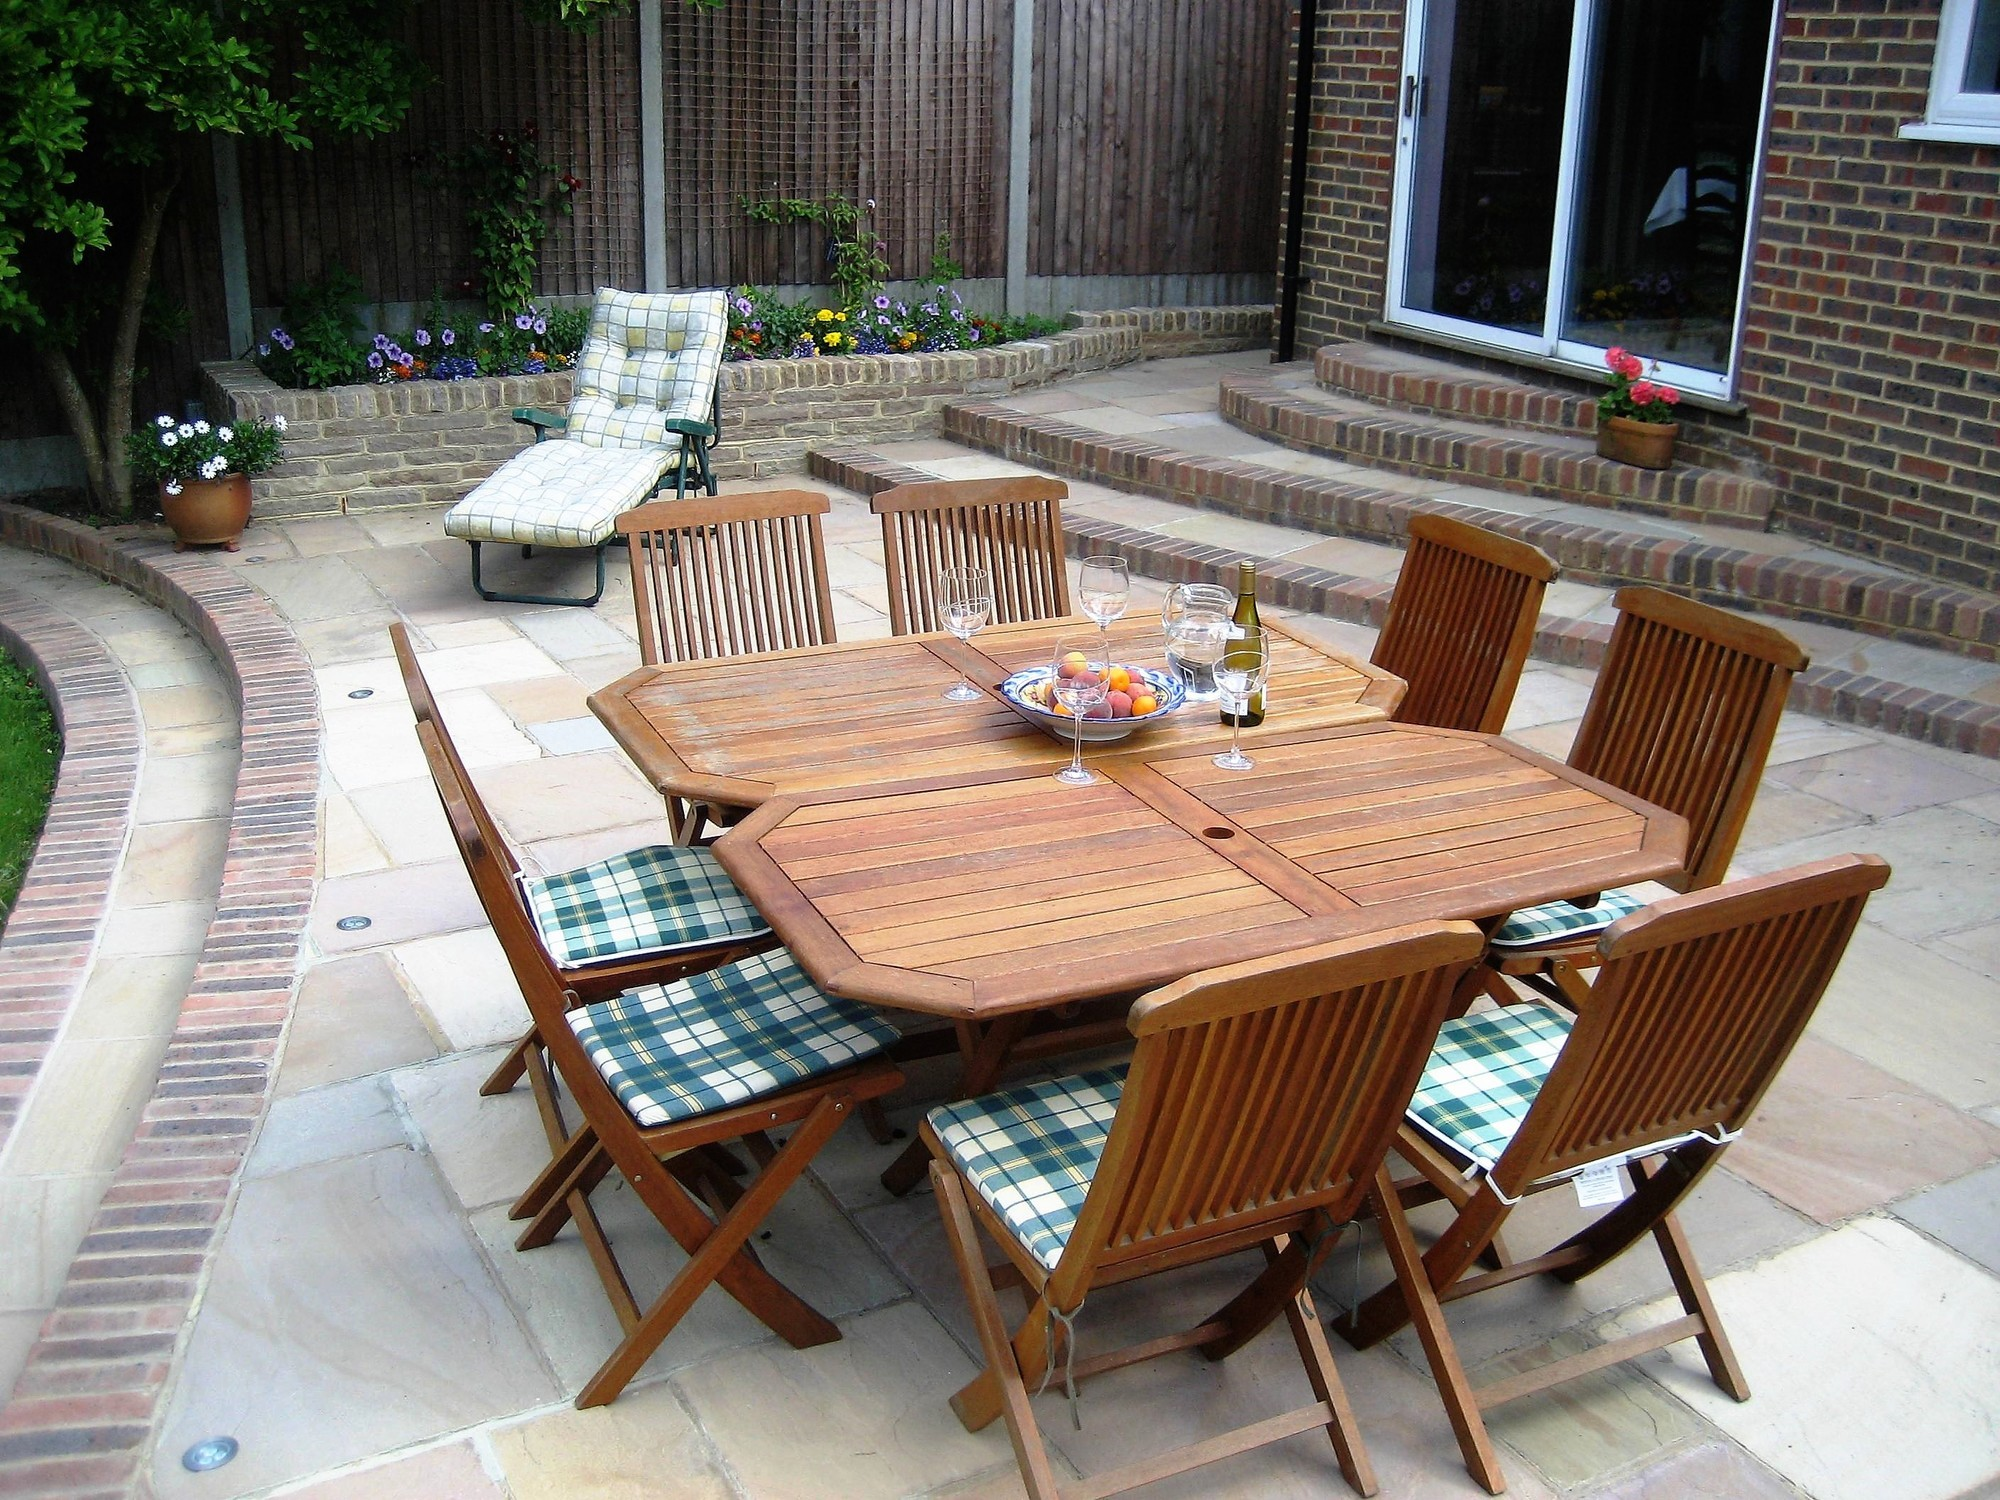 Maidstone patio dining area